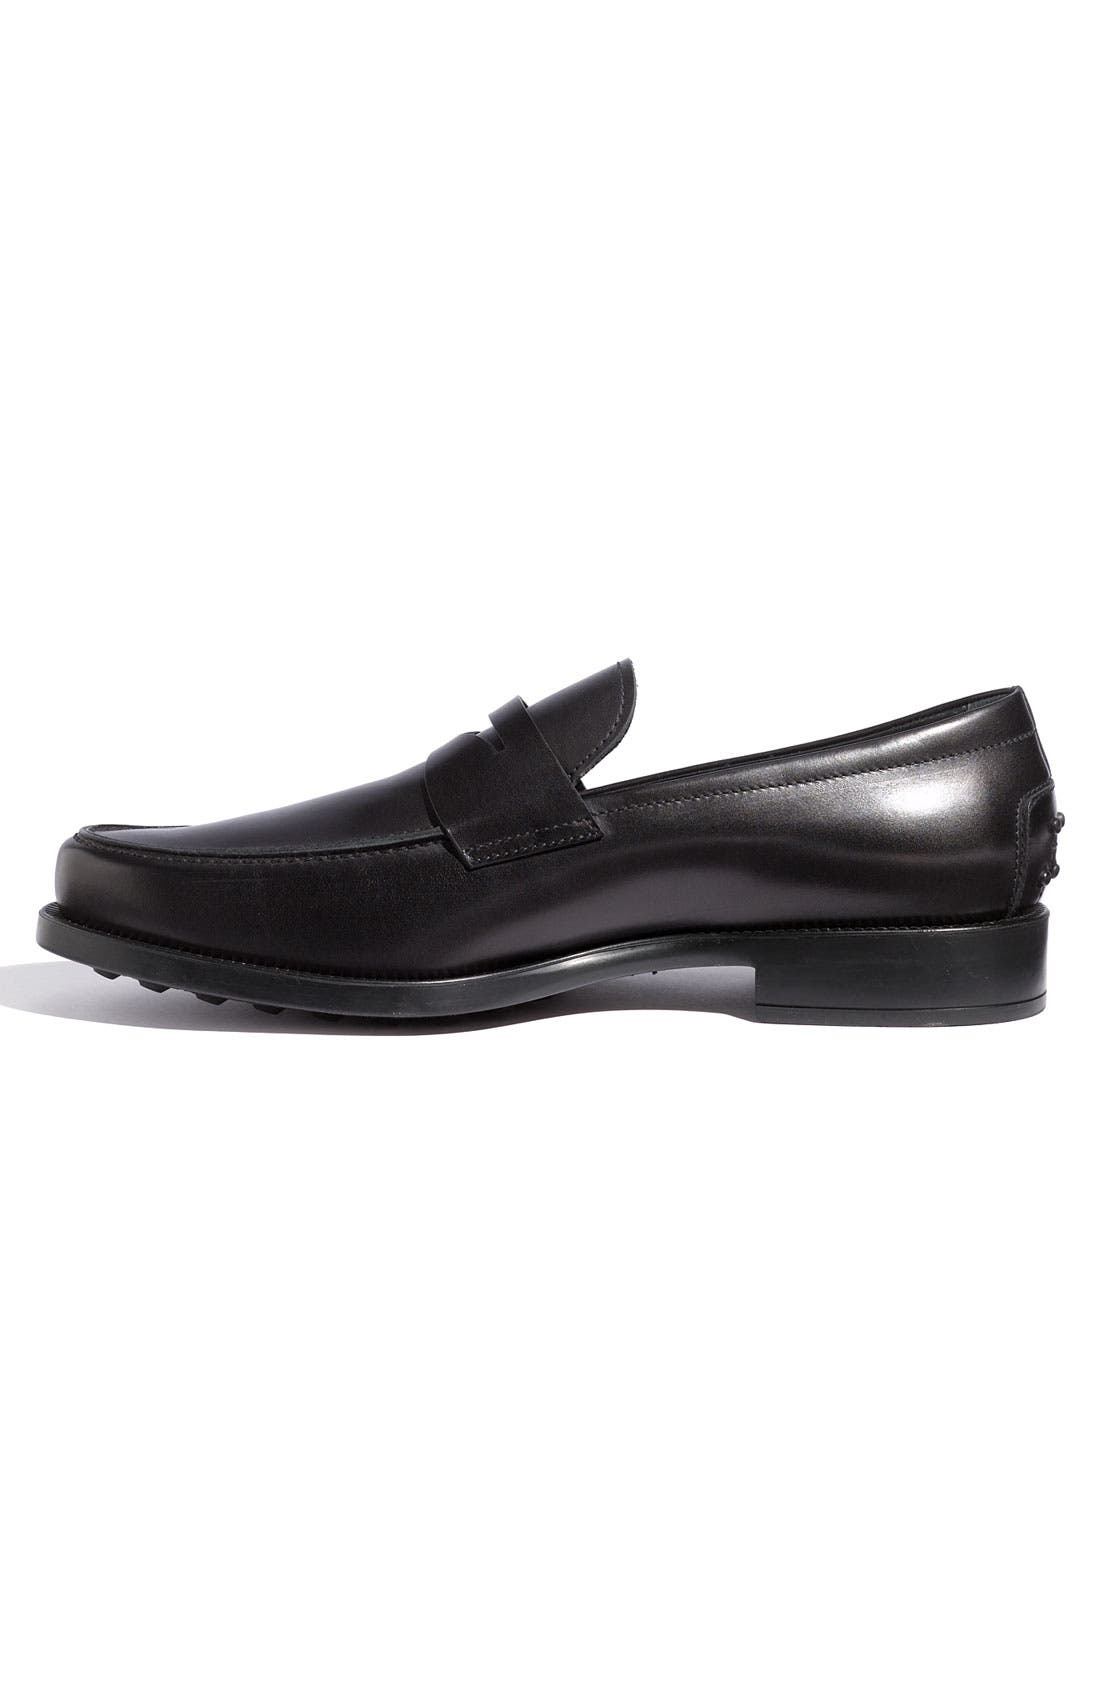 'Boston' Penny Loafer,                             Alternate thumbnail 8, color,                             001